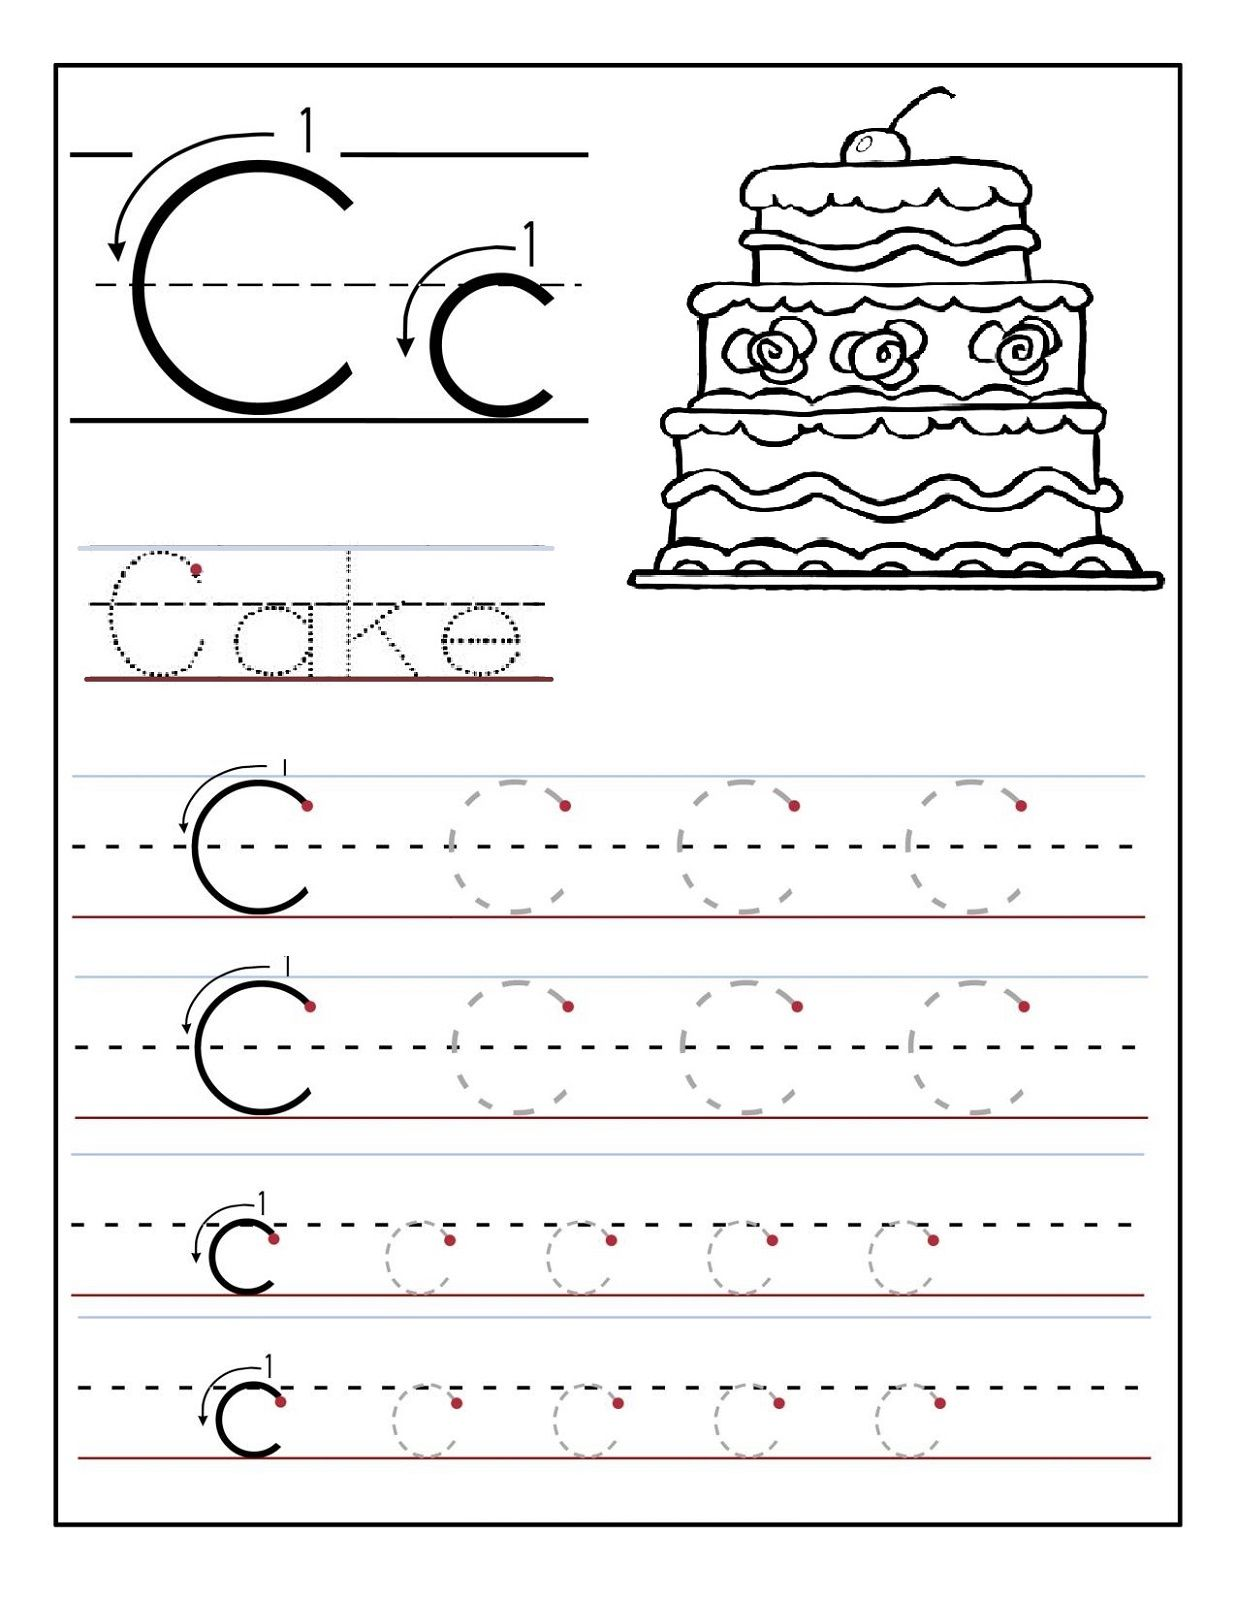 Pin On Lettering Worksheets